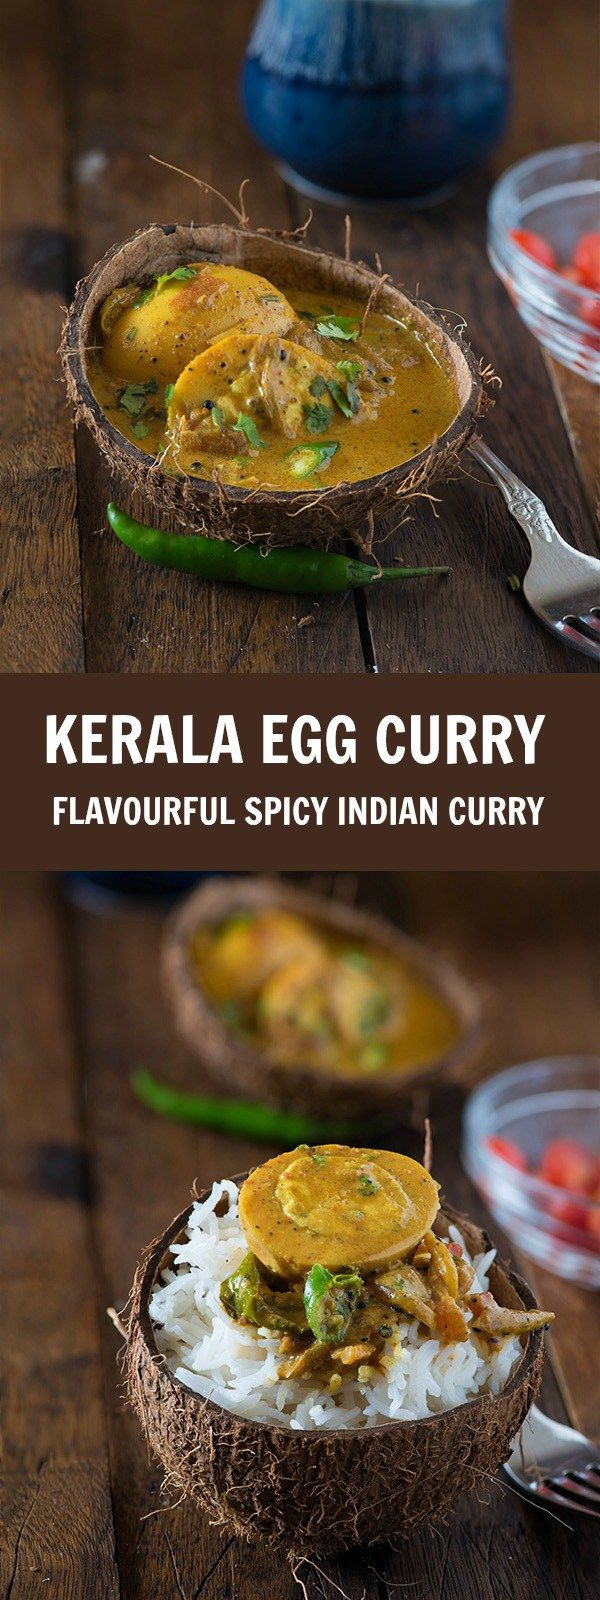 Kerala egg curry recipe is quick, easy and spicy Kerala style egg curry cooked in coconut milk. This is also known as Nadan Mutta curry. This recipe is an authentic hotel style Kerala egg curry which is served with Chapati, rice, Malabar parotta, Idiyappa